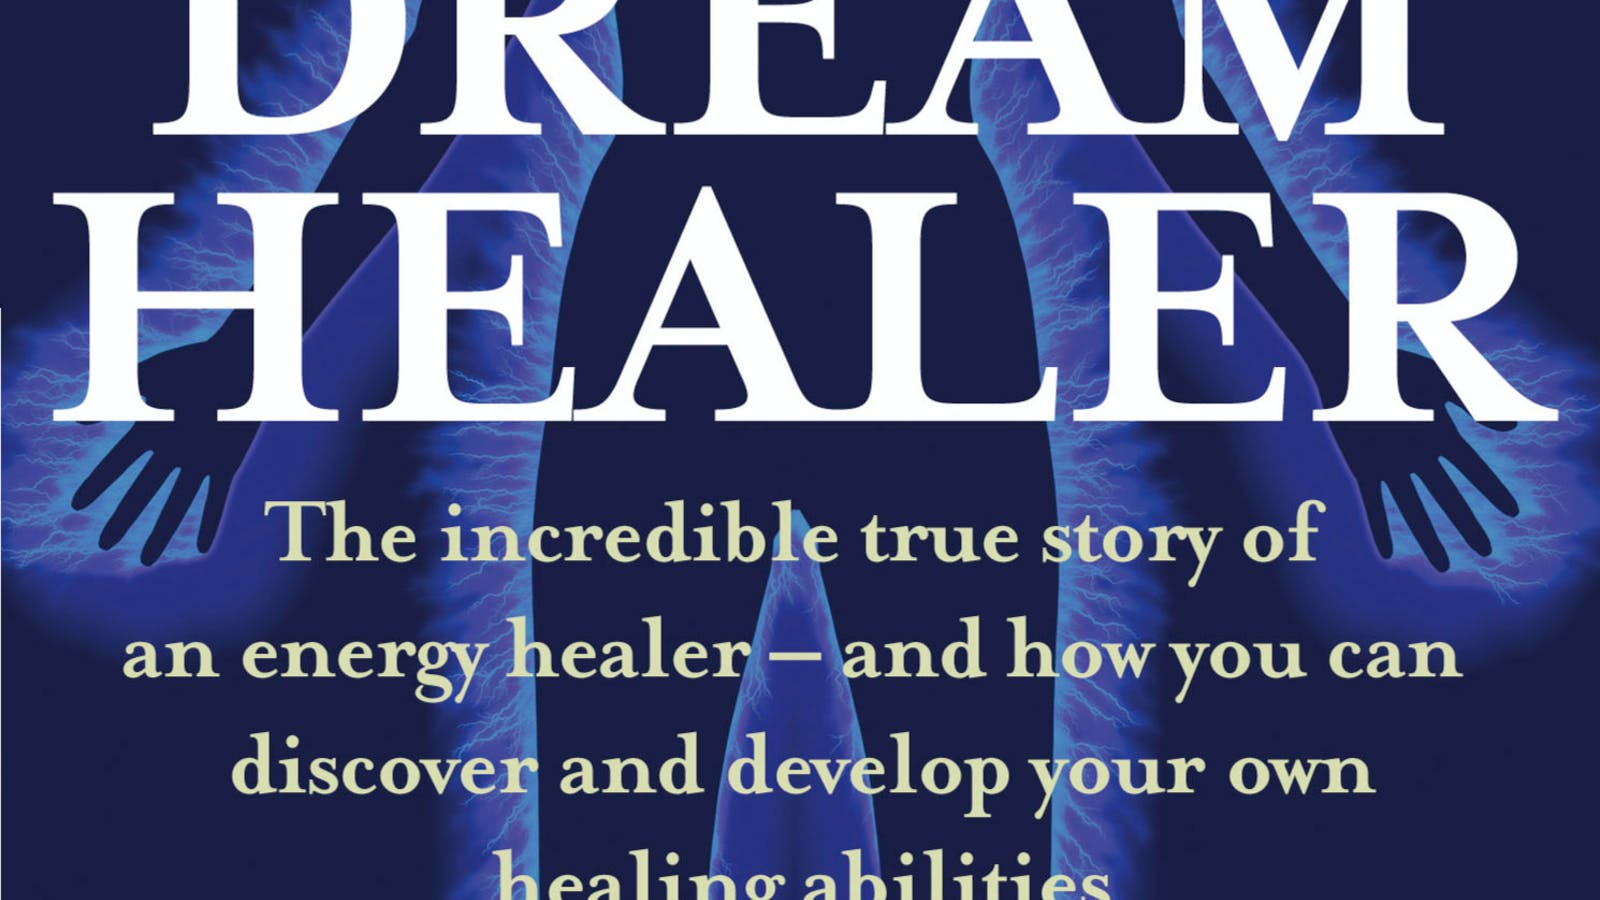 Complete Dreamhealer The Incredible True Story Of An Energy